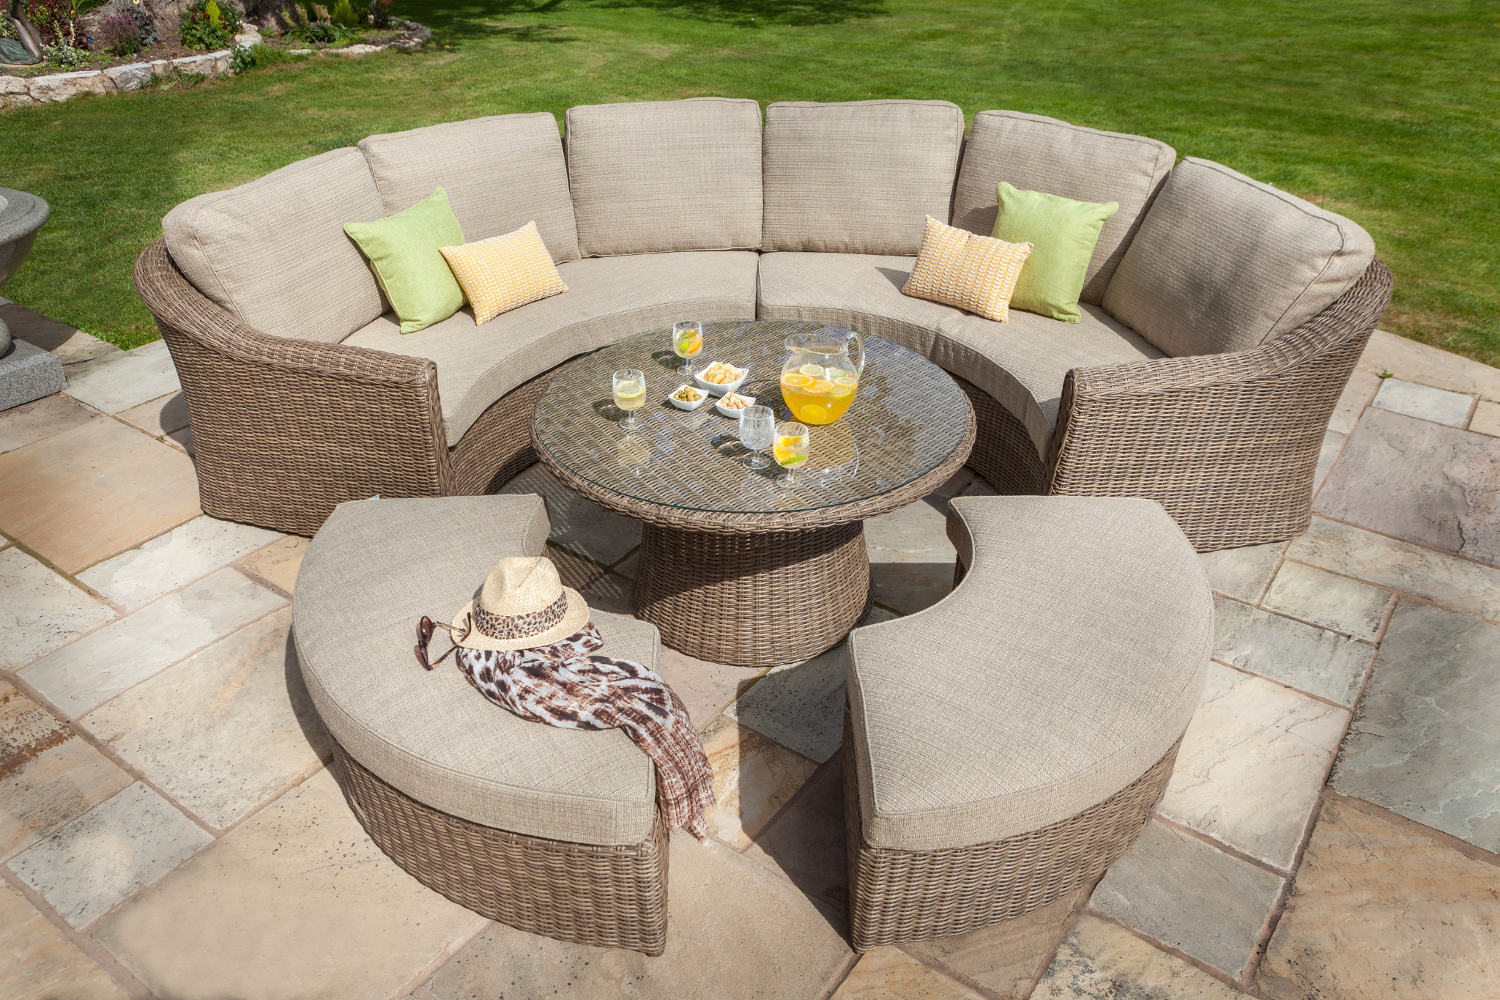 Extra image of hartman bali curved lounge weave furniture set in chestnut tweed